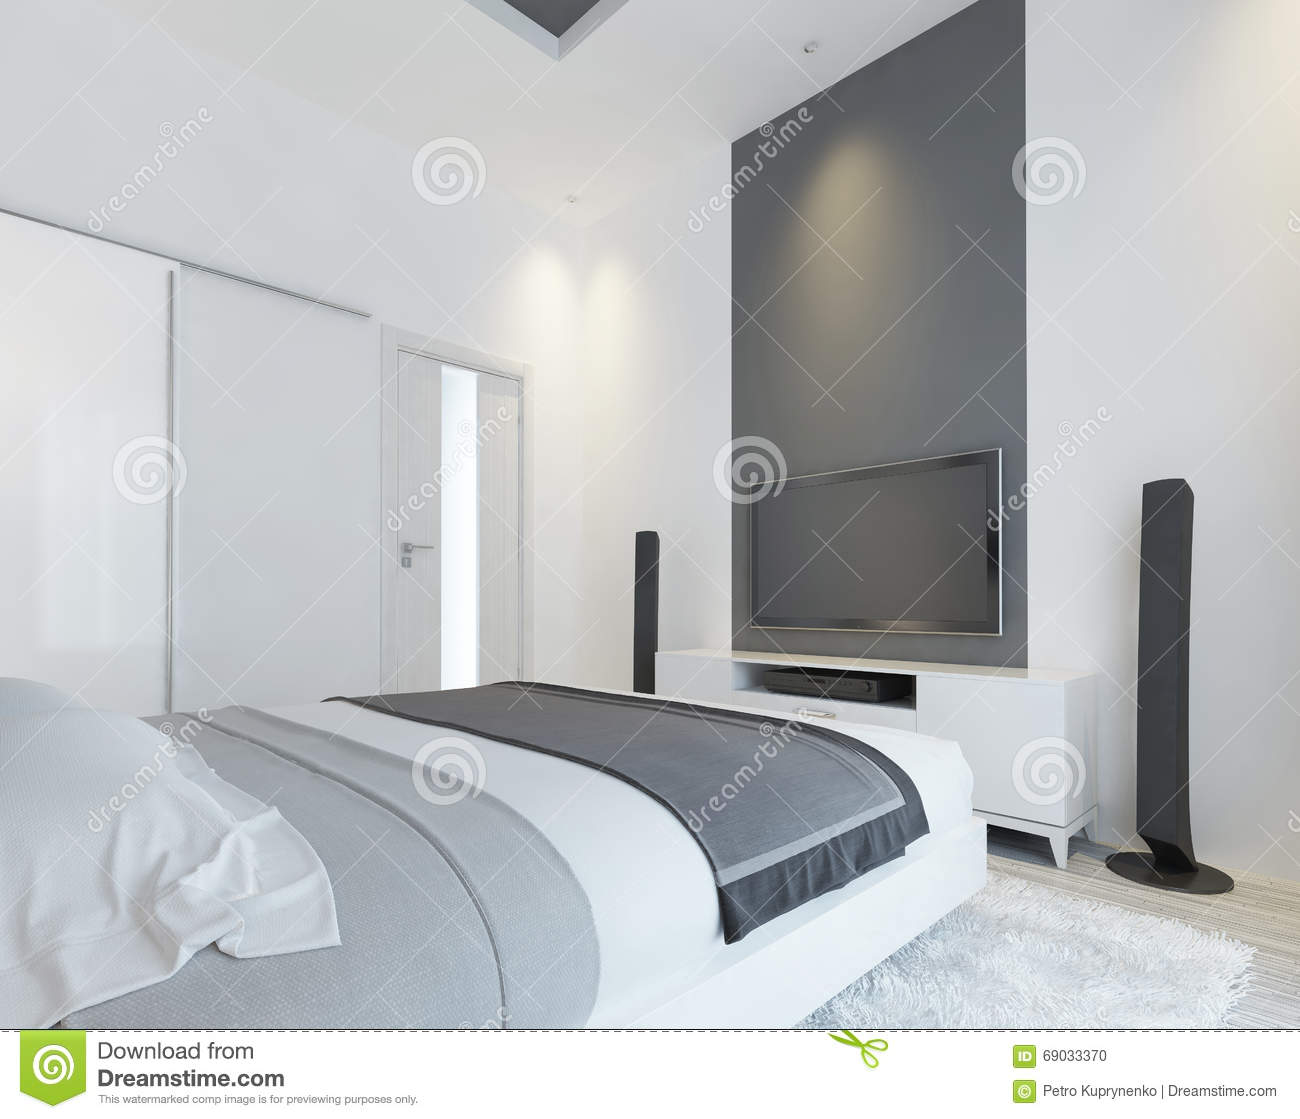 bedroom console contemporary gray media modern sliding speakers ... - TV Console With Speakers In The Modern Bedroom. Stock Illustration